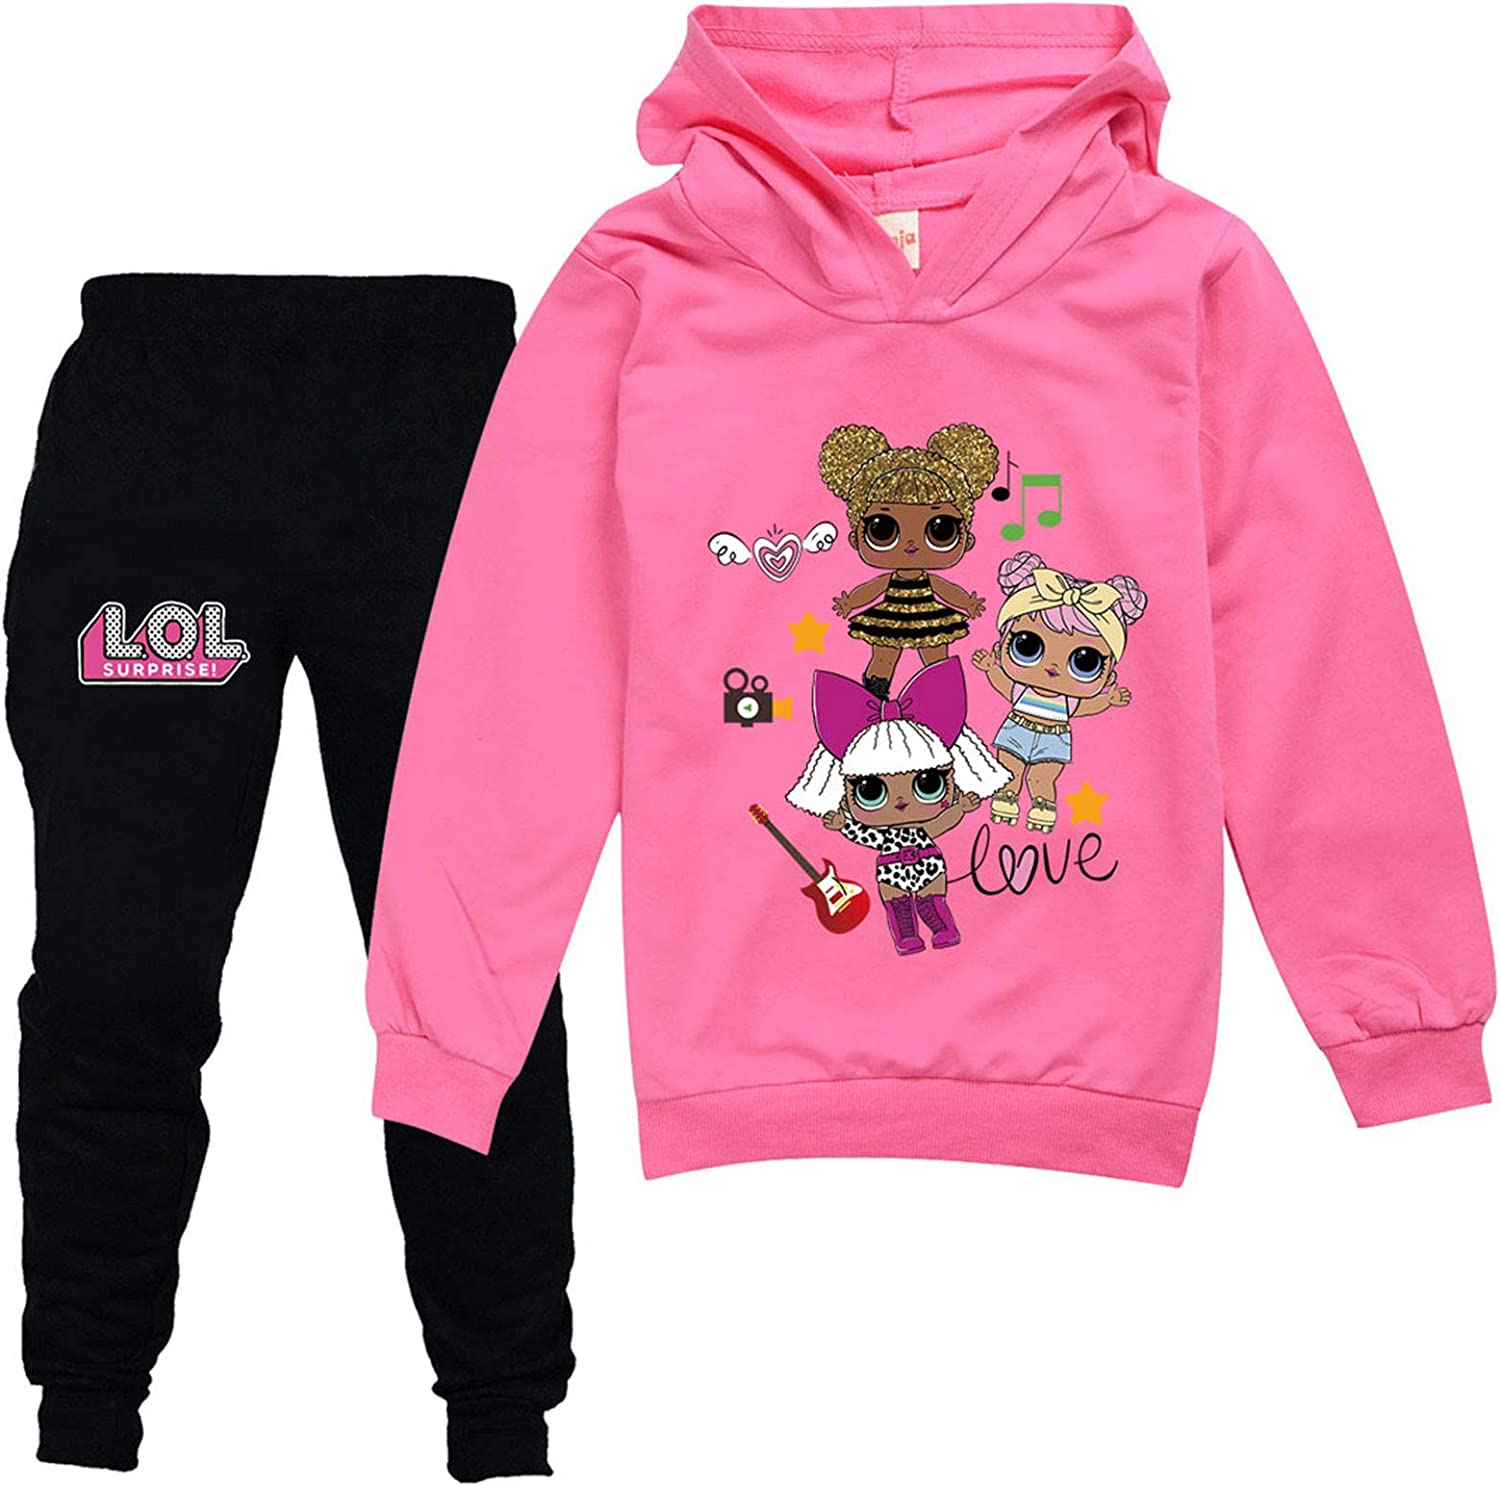 Girls Cloths Sweater and Sweatpants National uniform free shipping Sets Toddler for G Quantity limited Tracksuit